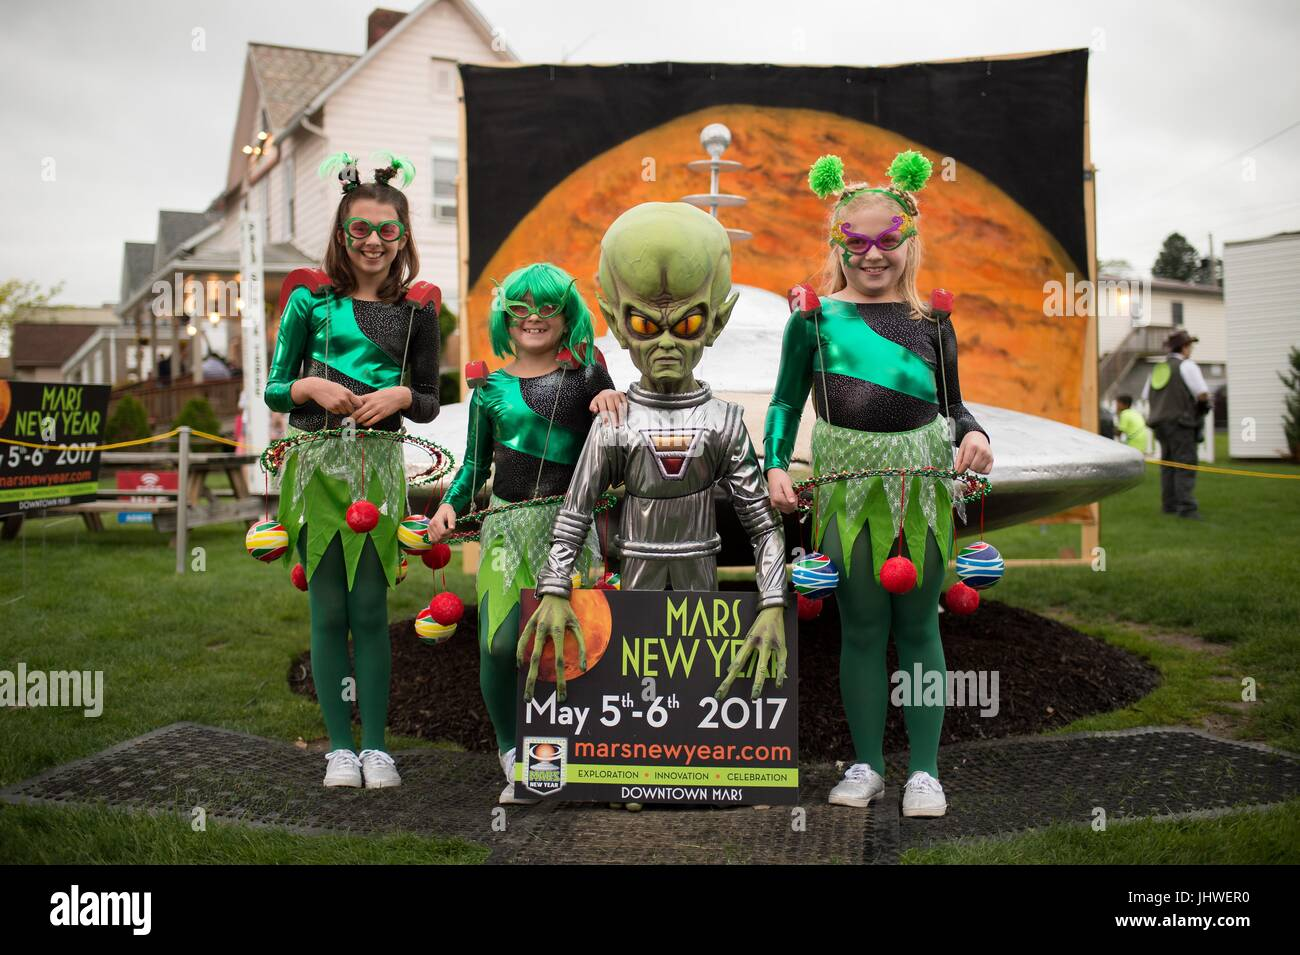 Children dressed in alien costumes pose with a model spacecraft and alien during the NASA Mars New Year celebration - Stock Image